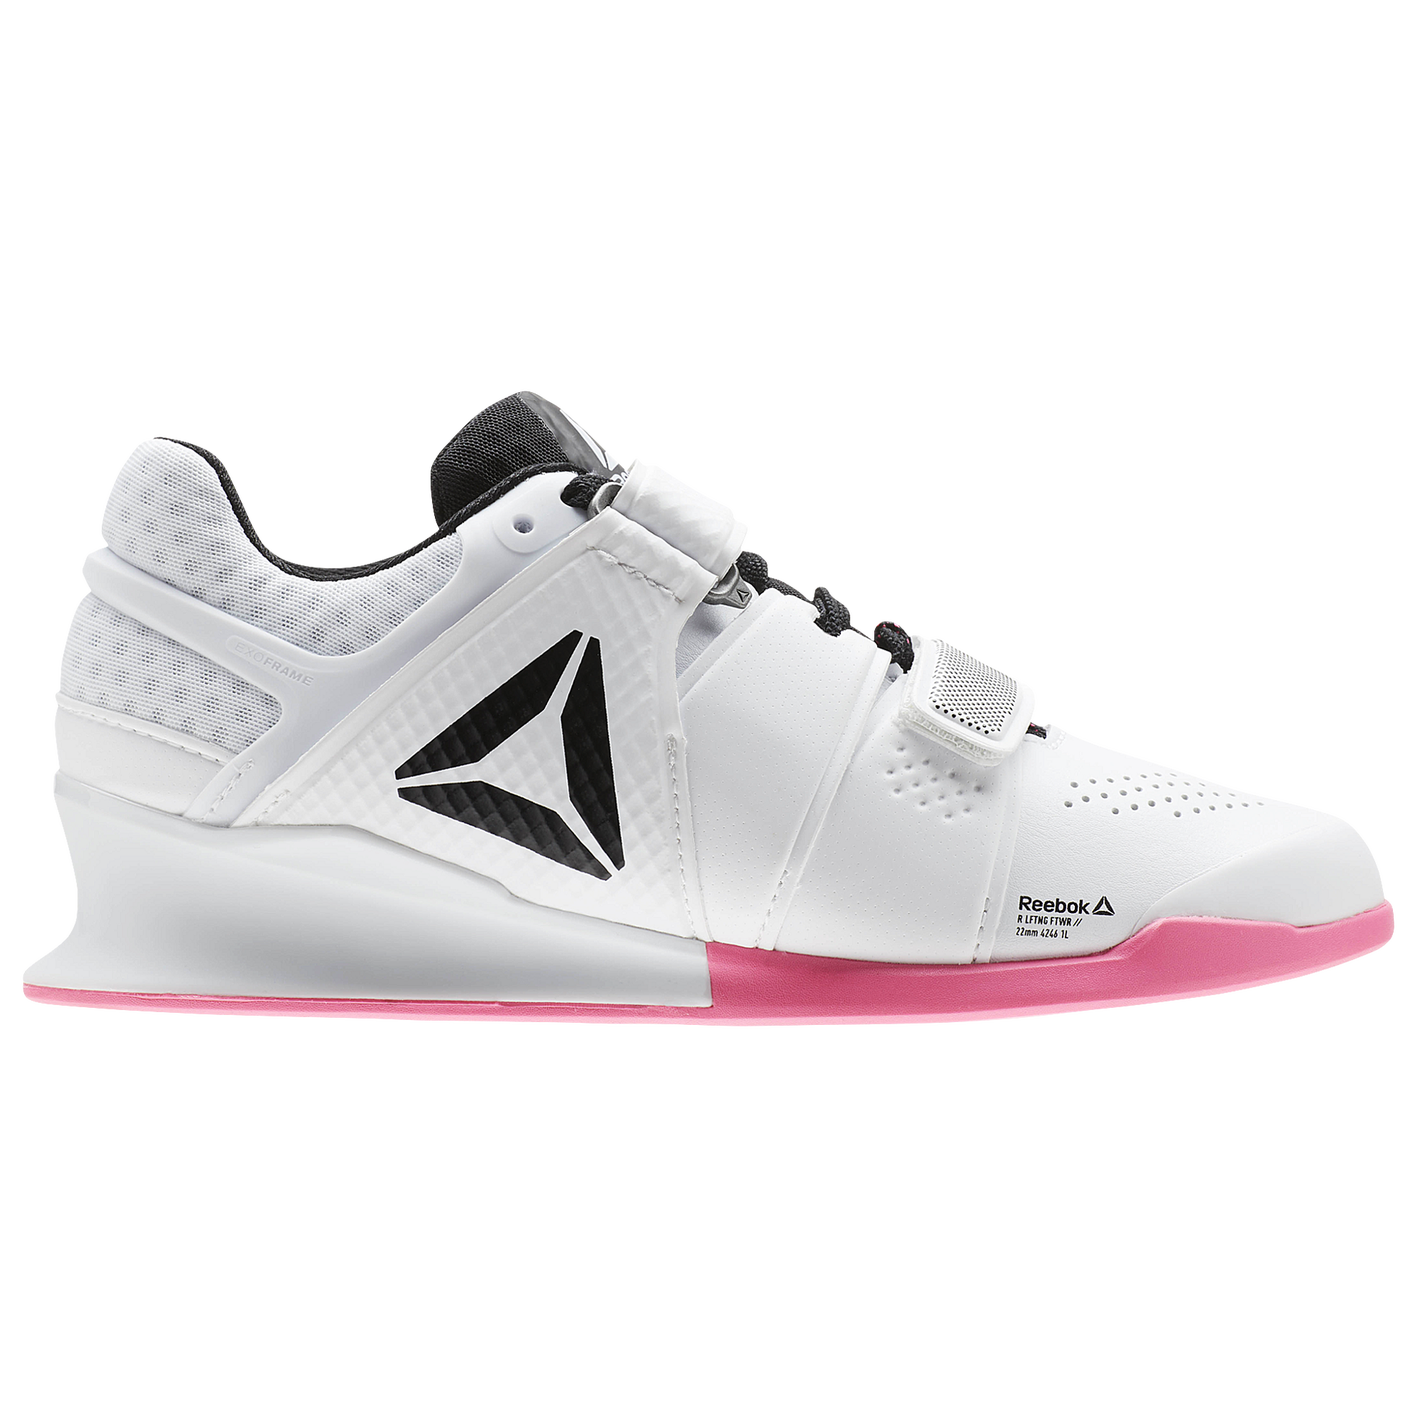 c2cfcc91cb3 Reebok Legacy Lifter - Women s - Training - Shoes - White Black Acid ...